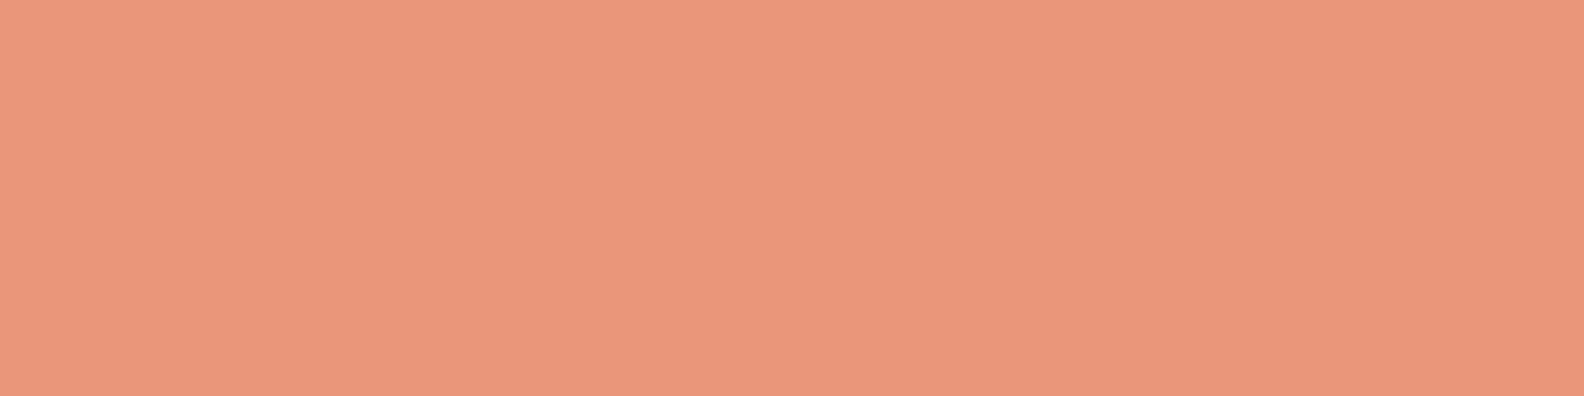 1584x396 Dark Salmon Solid Color Background